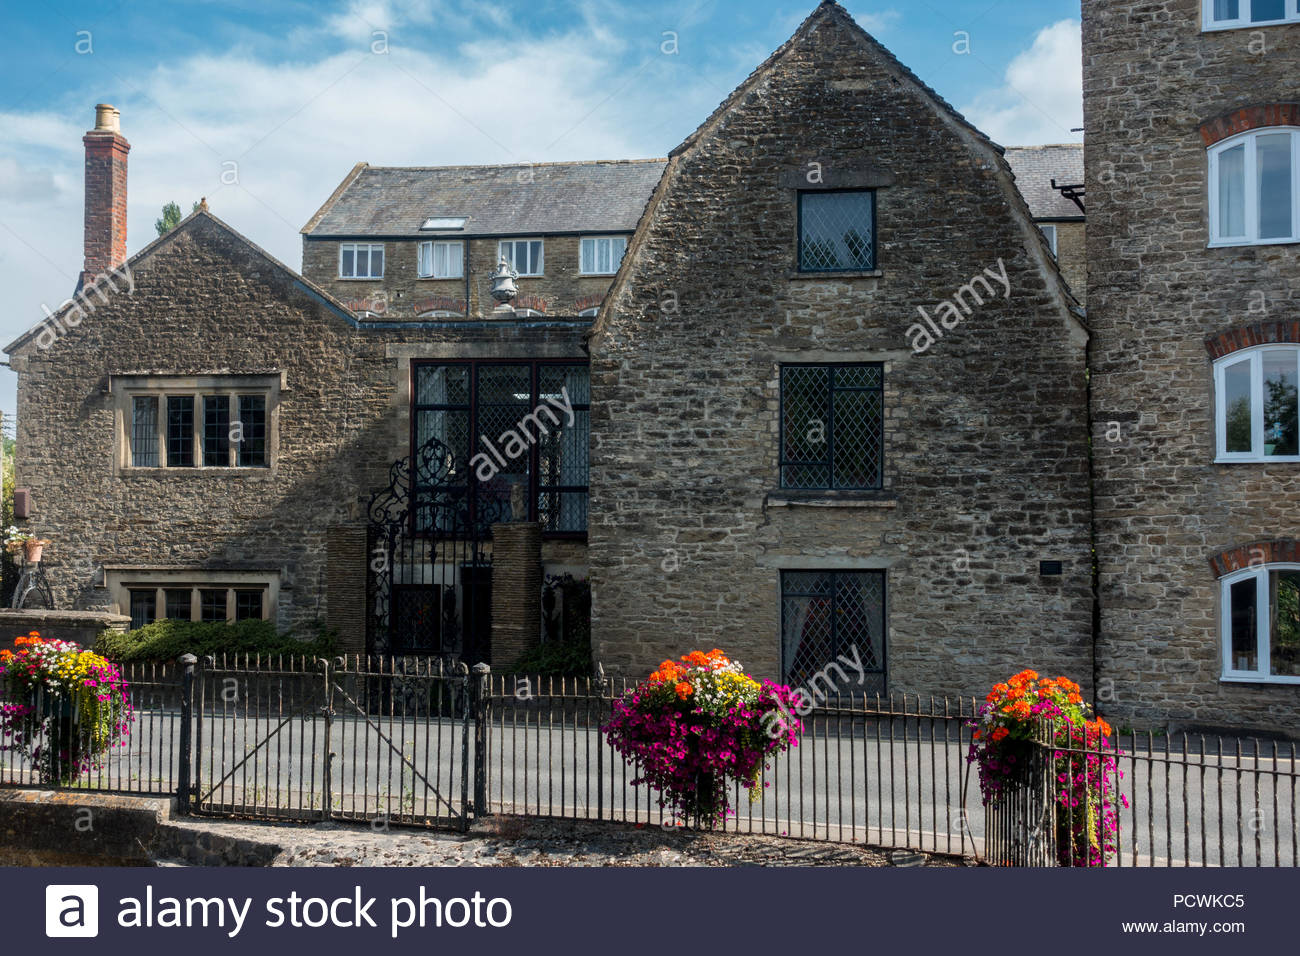 Part of the old Malmesbury Silk Mills, now converted into accommodation, Malmesbury, Wiltshire - Stock Image